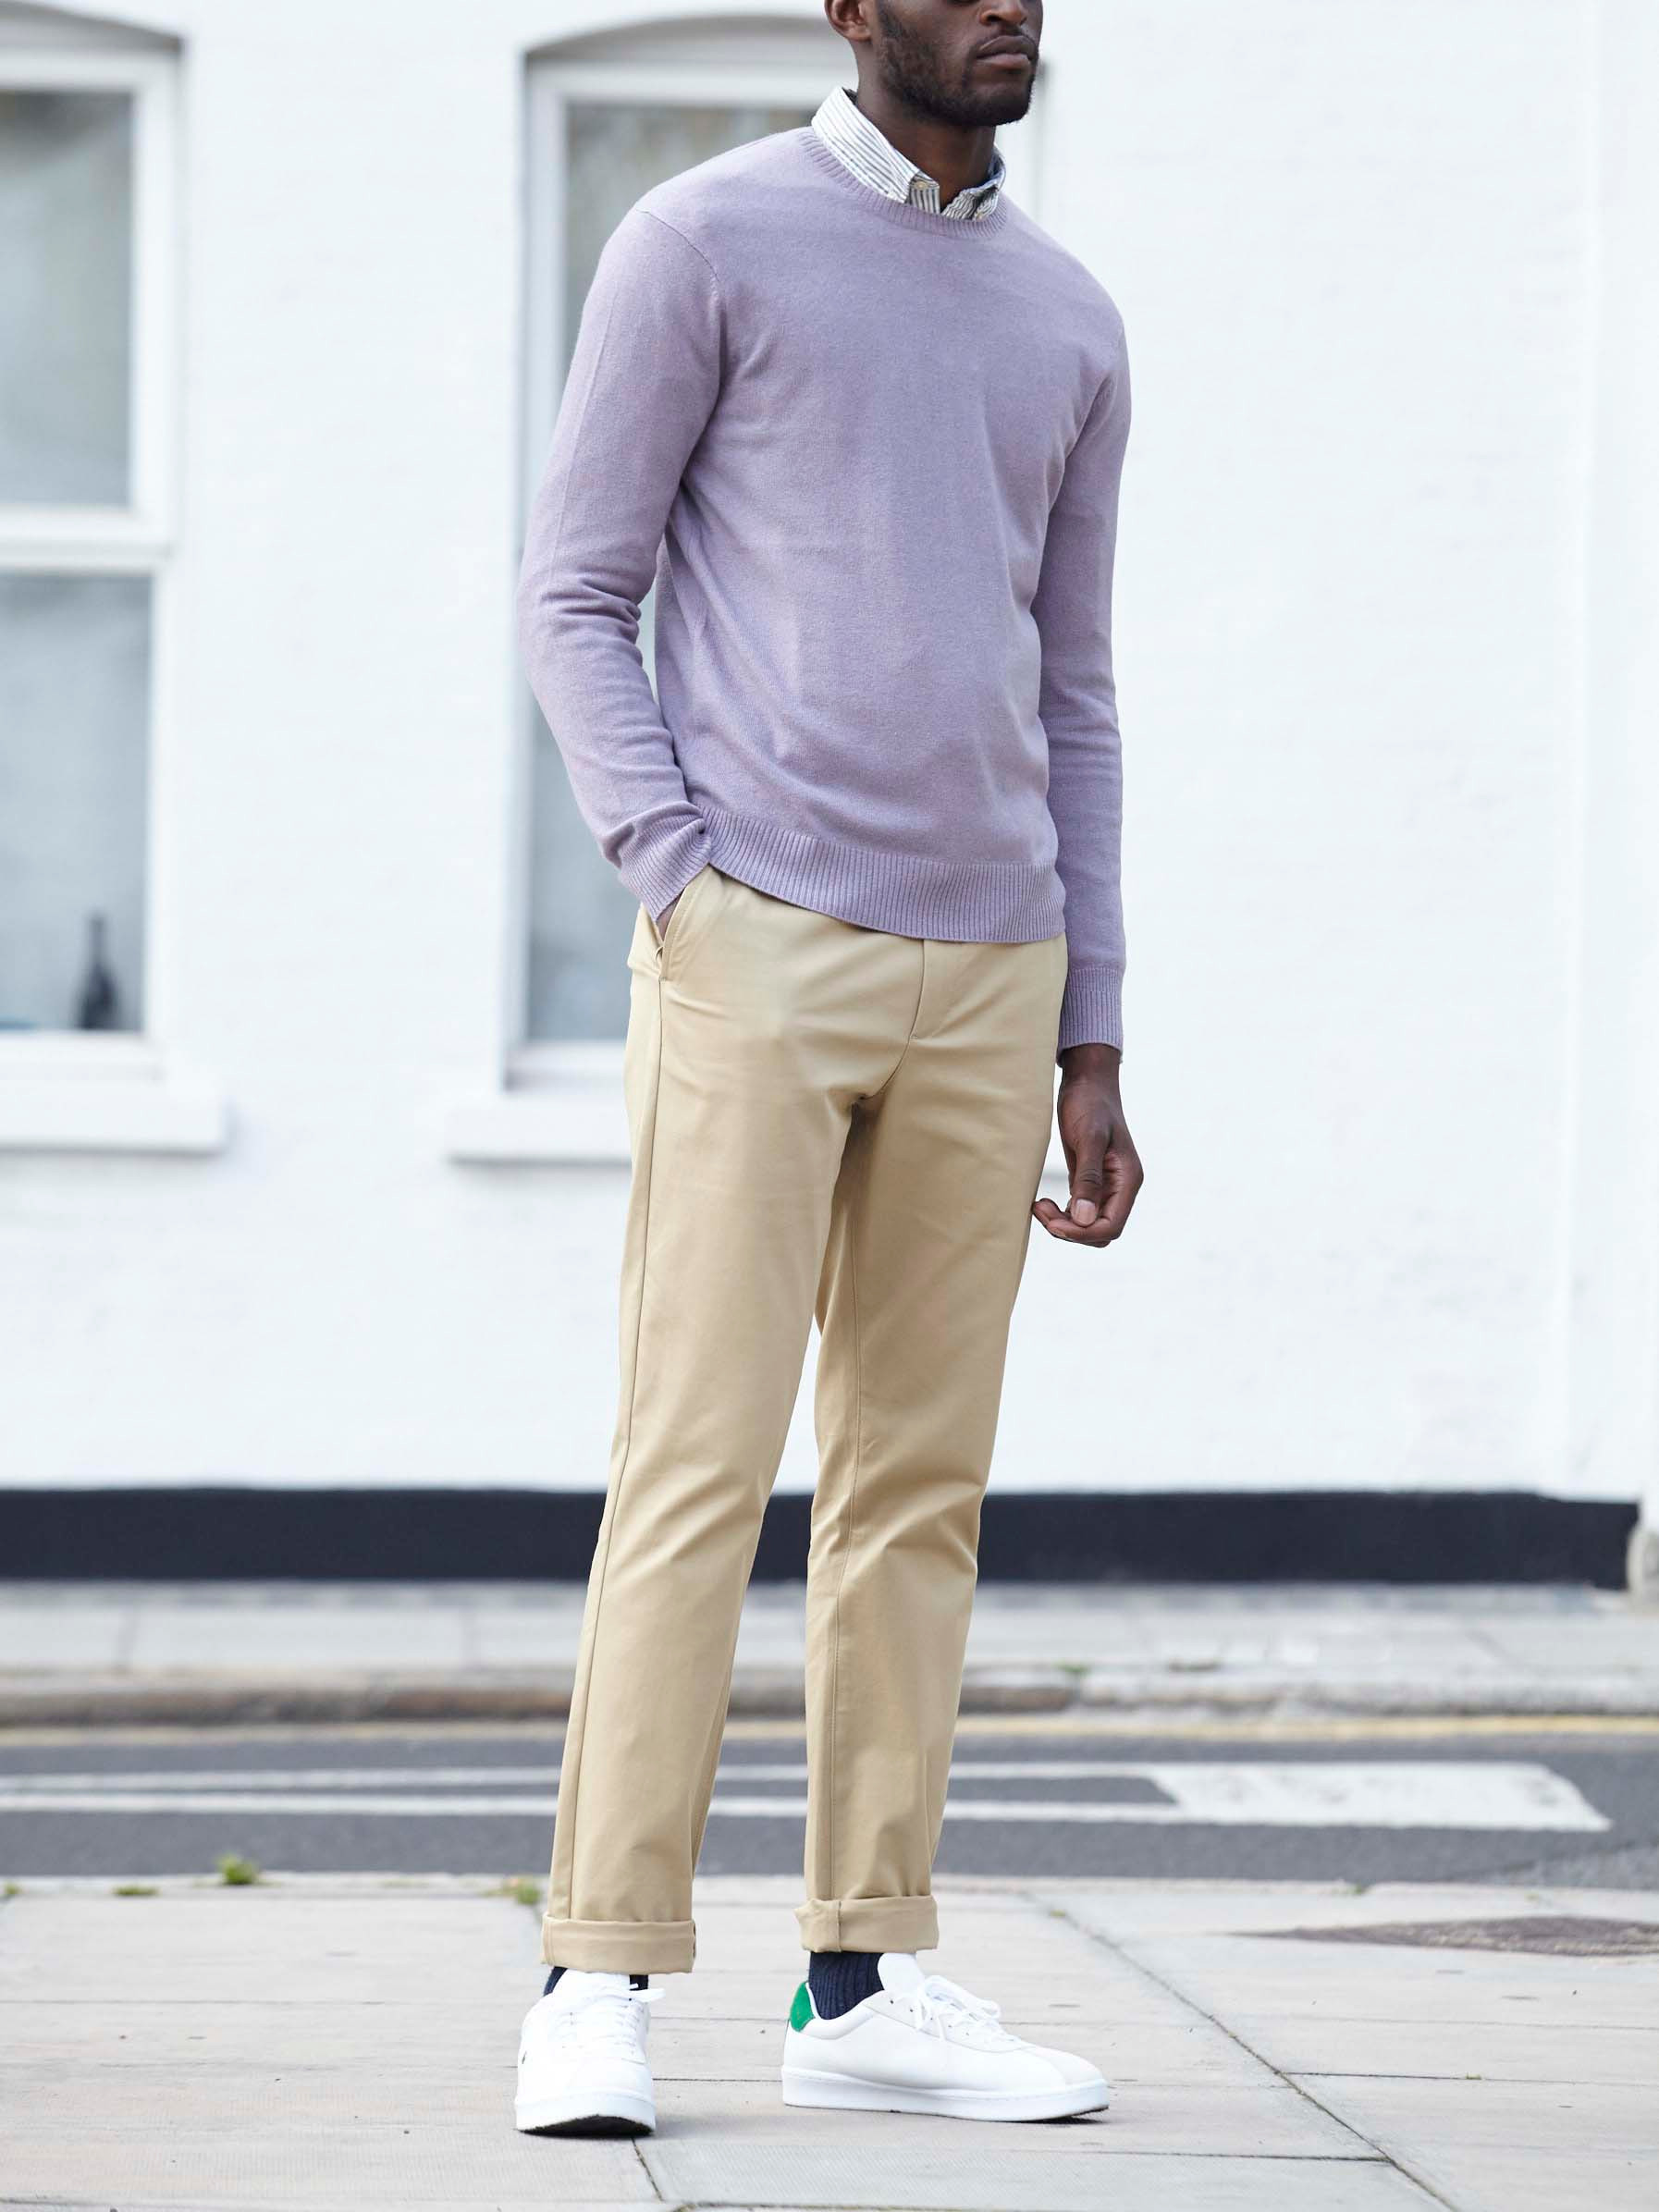 Men's outfit idea for 2021 with pale coloured crew neck jumper, striped casual shirt, stone chinos, white trainers. Suitable for spring and autumn.